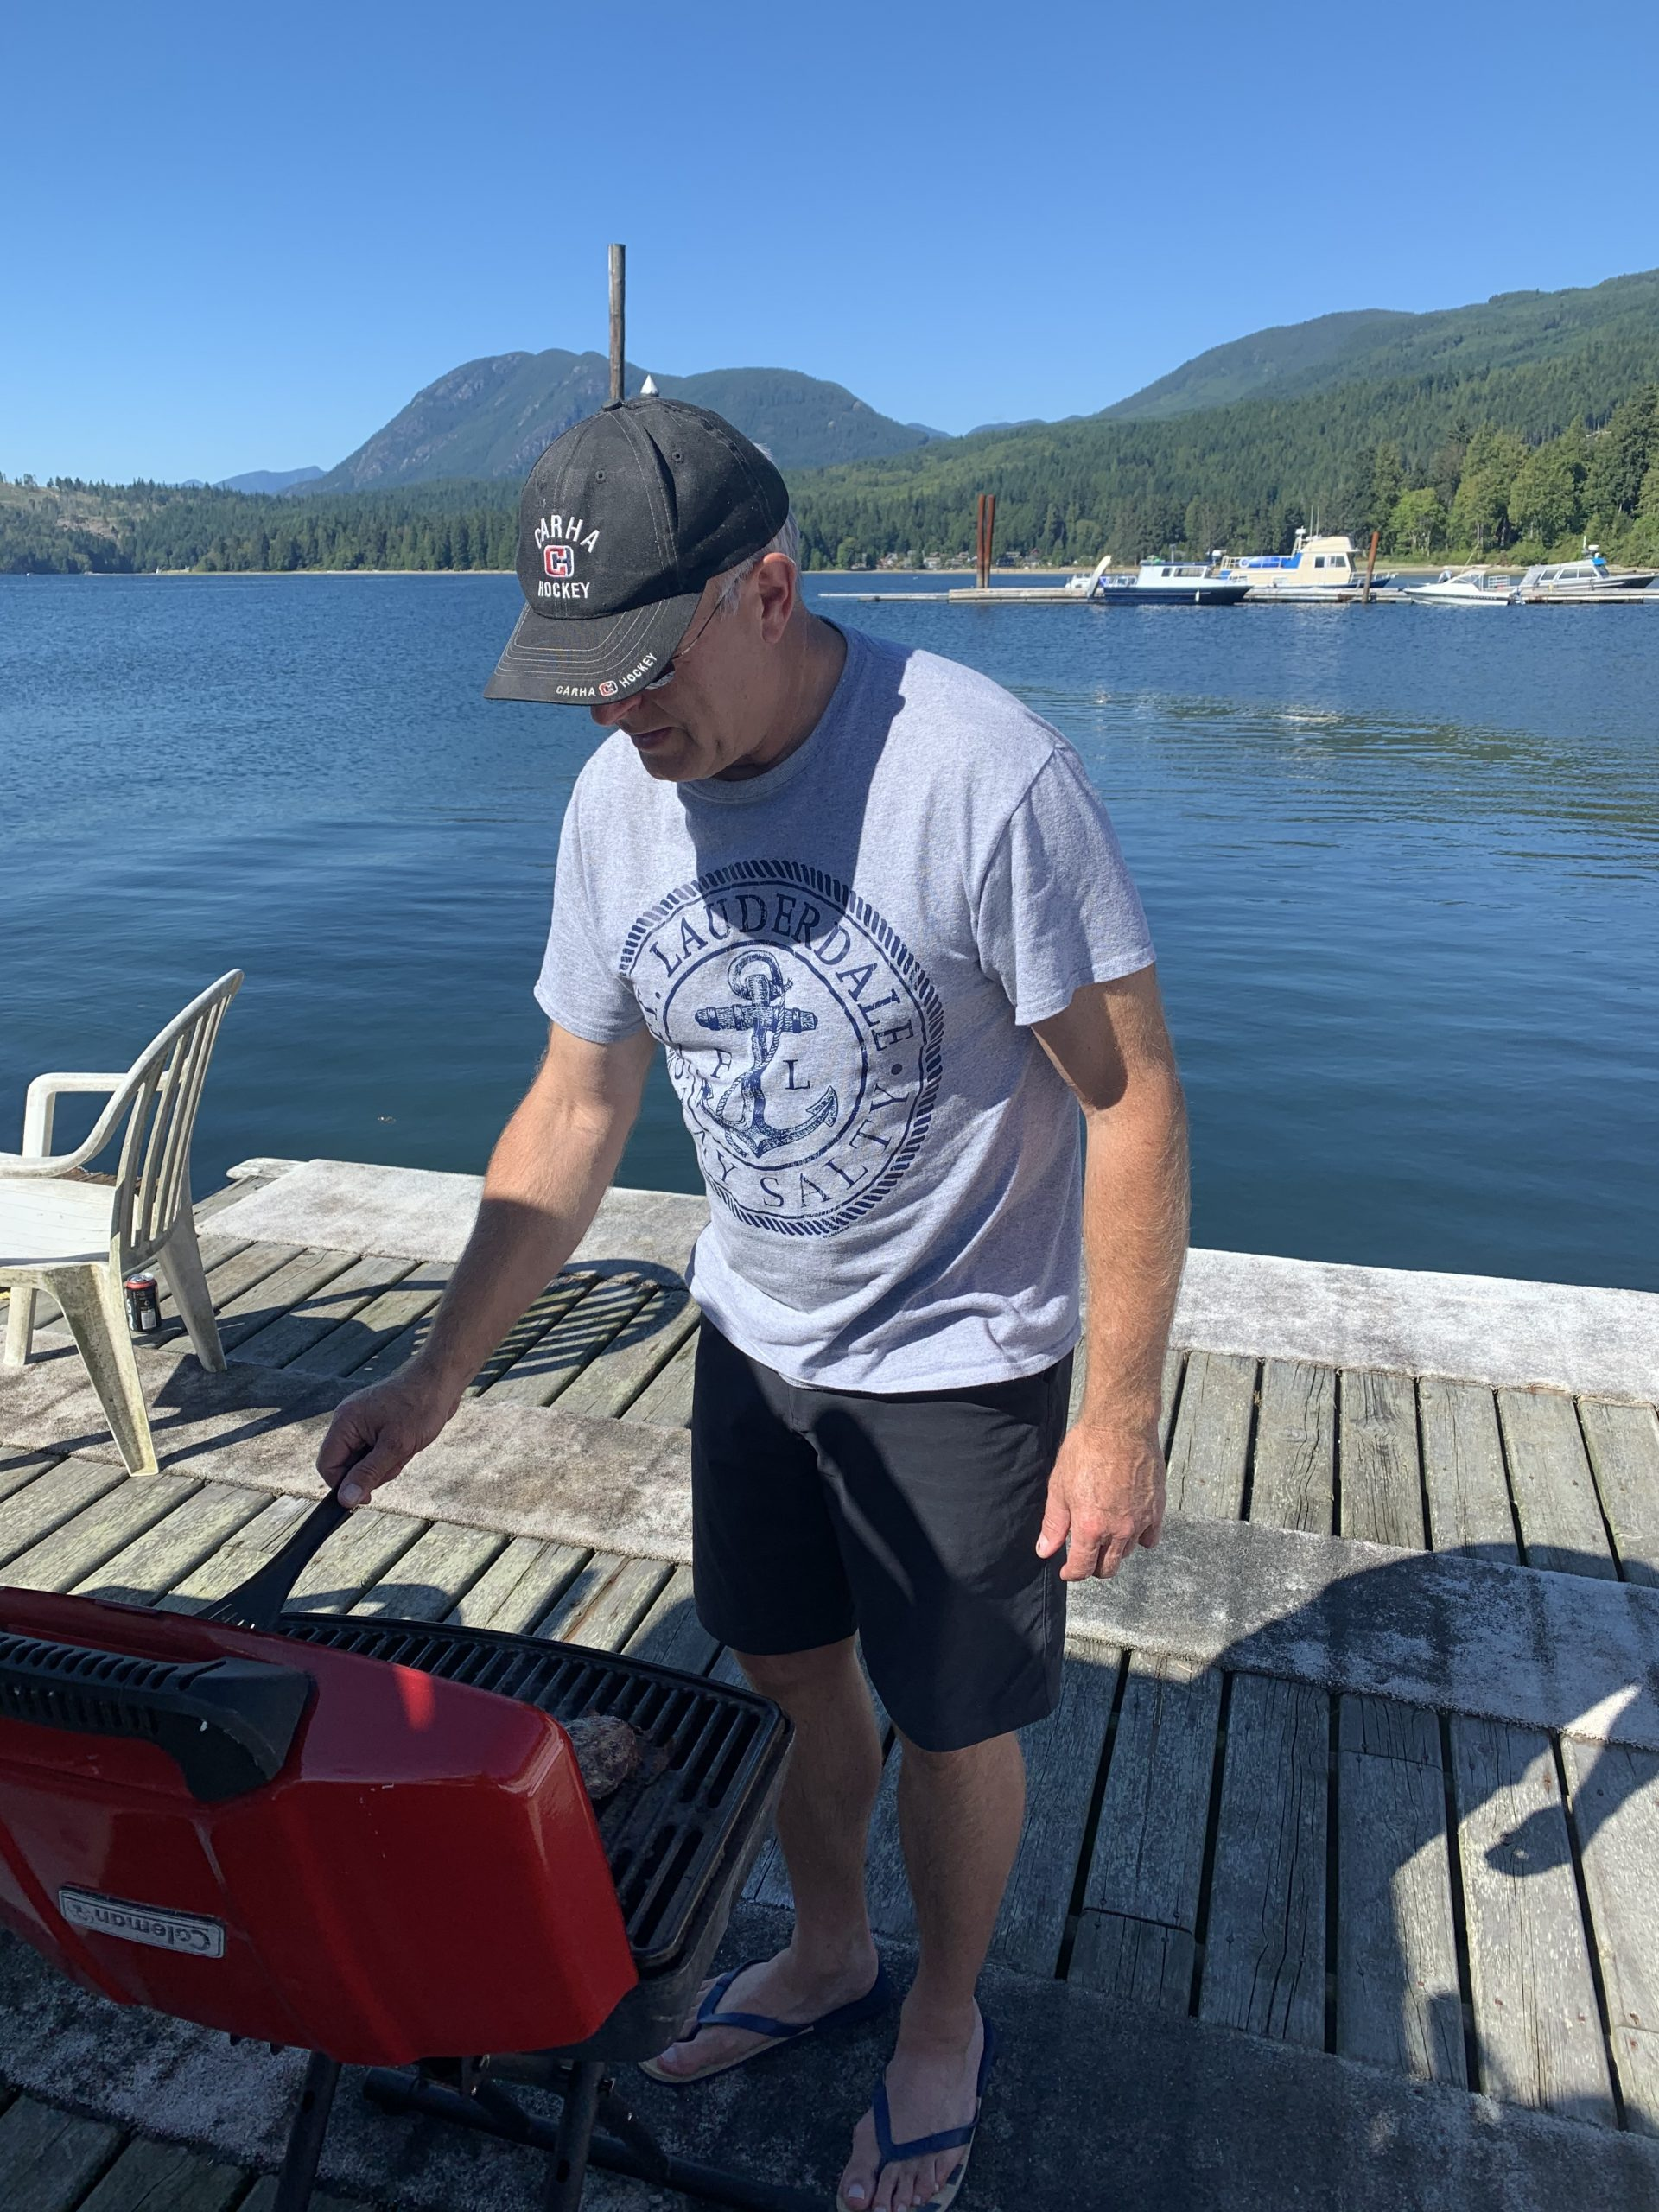 Dennis tends to the grill after an afternoon of racing on Porpoise Bay in Sechelt BC.